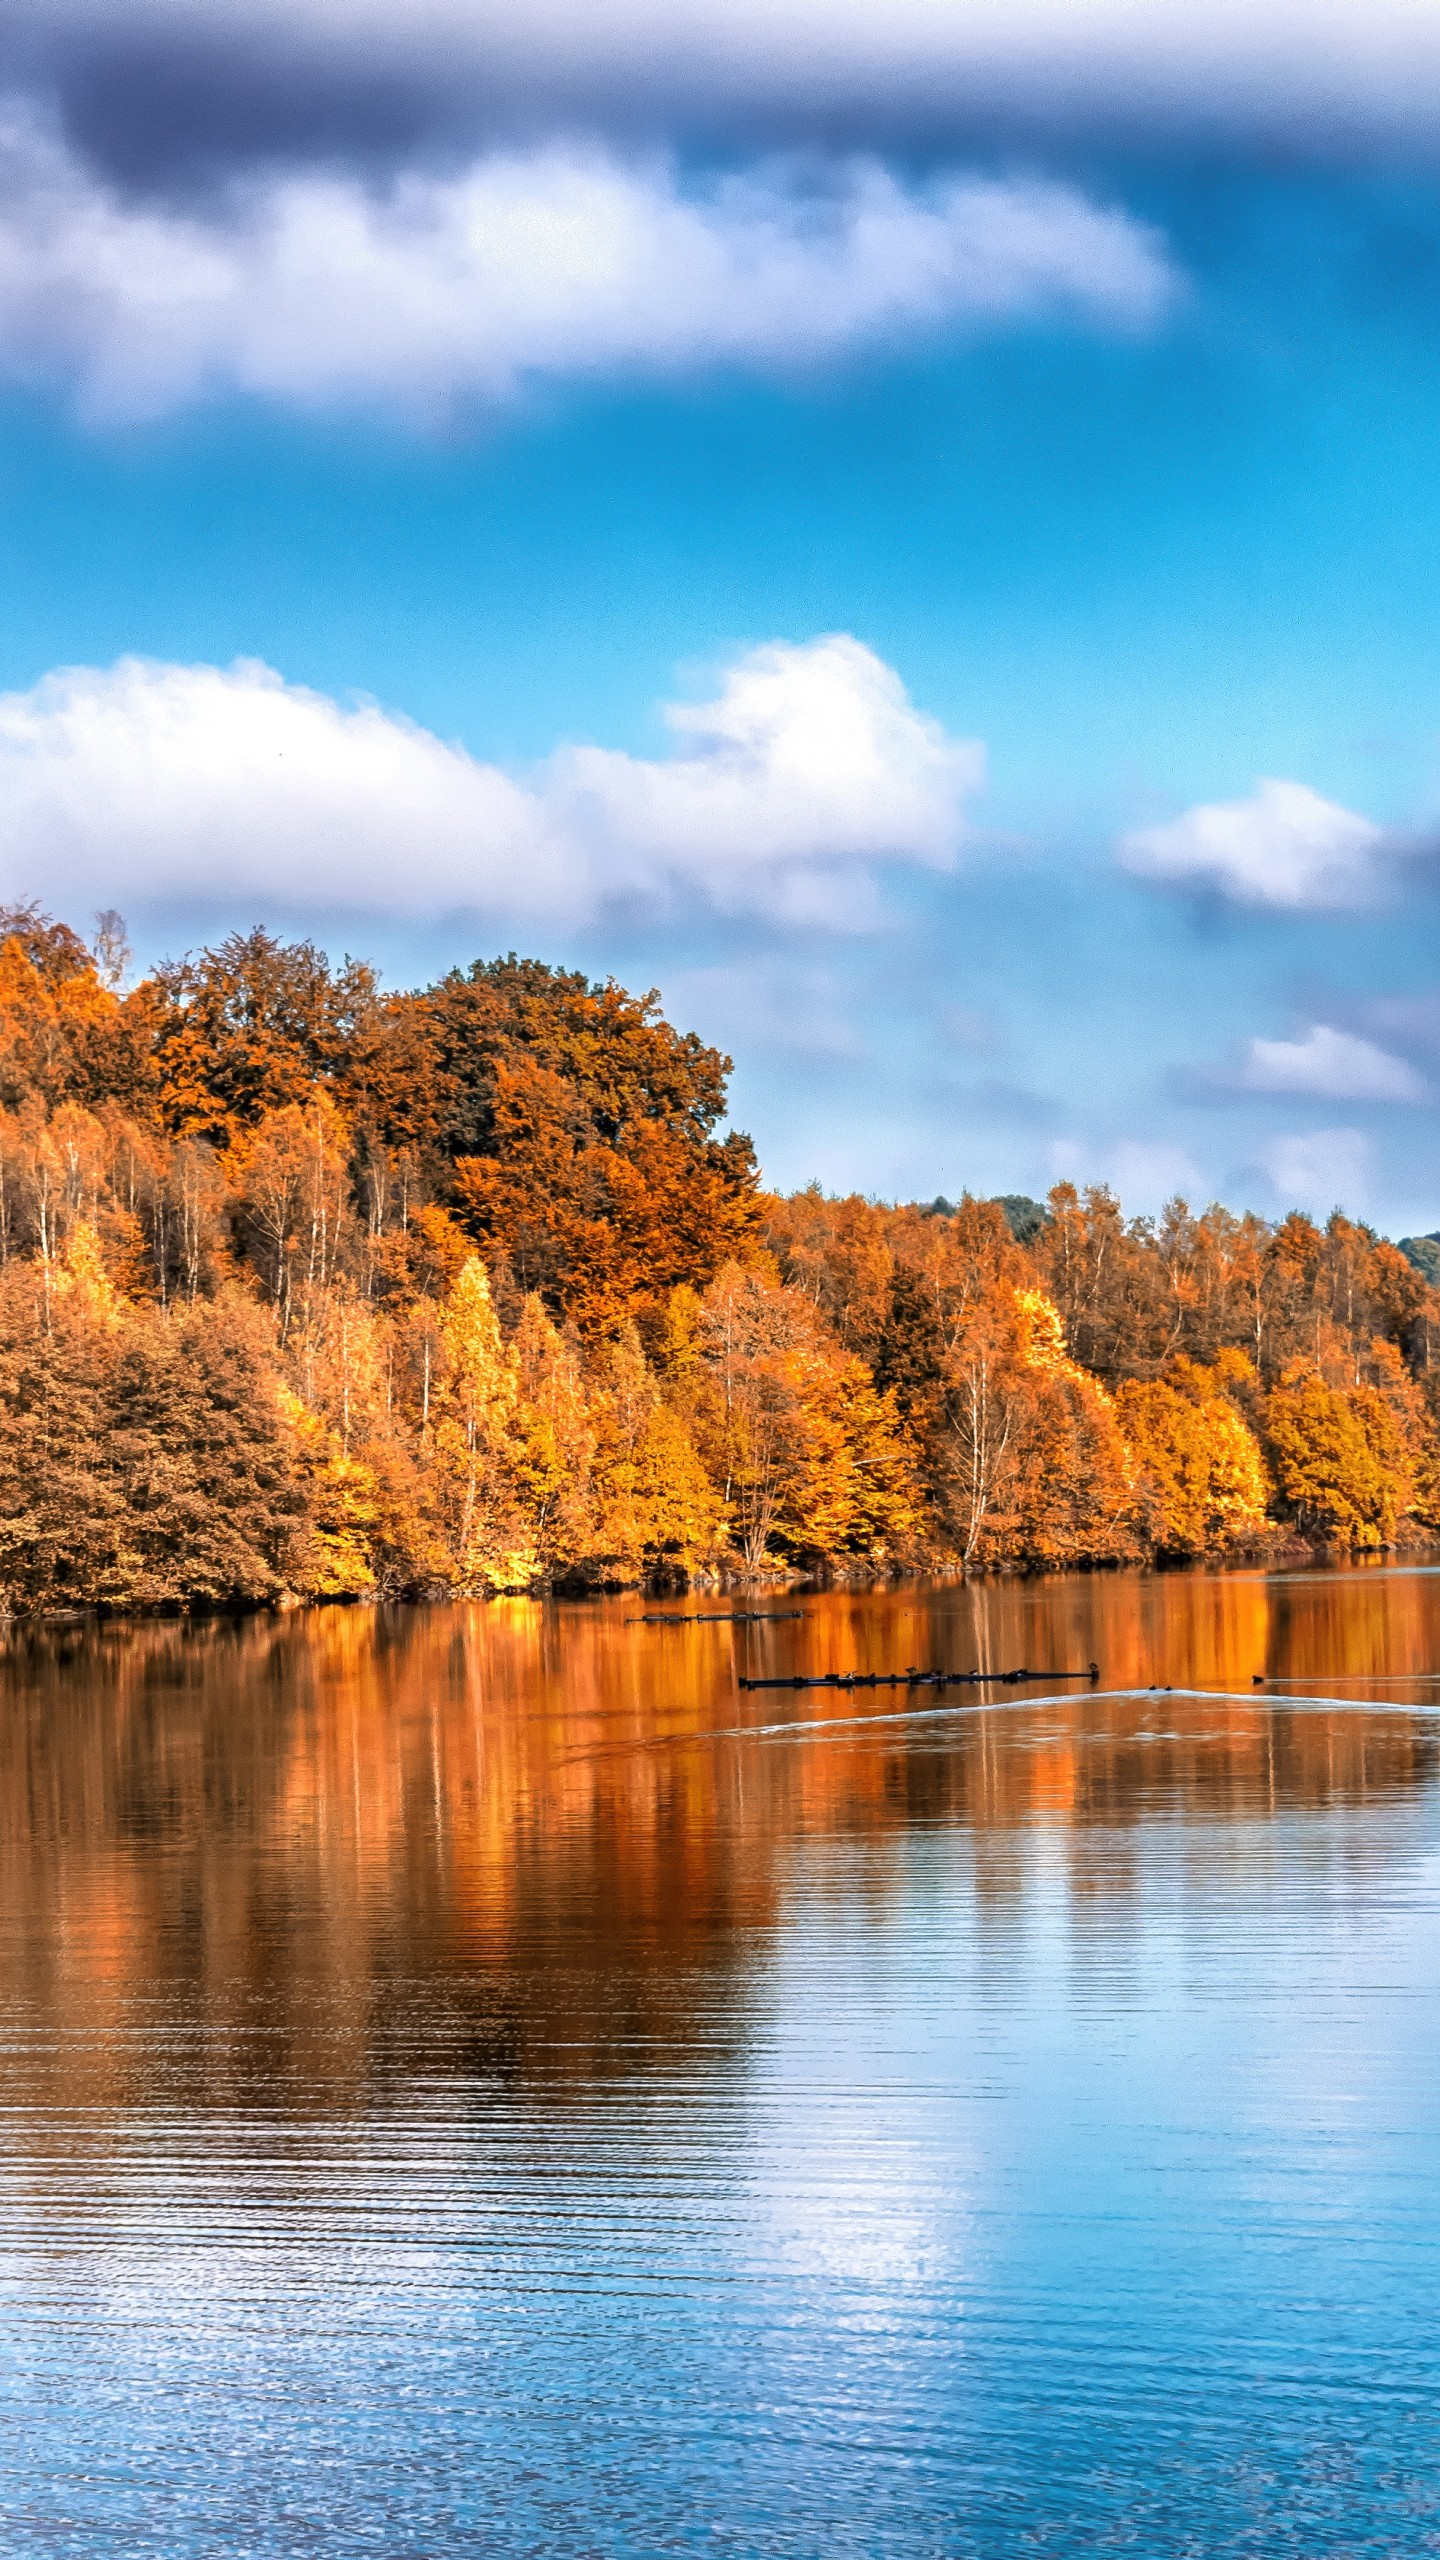 Wallpaper Autumn Lake Forest 5k Nature 15987